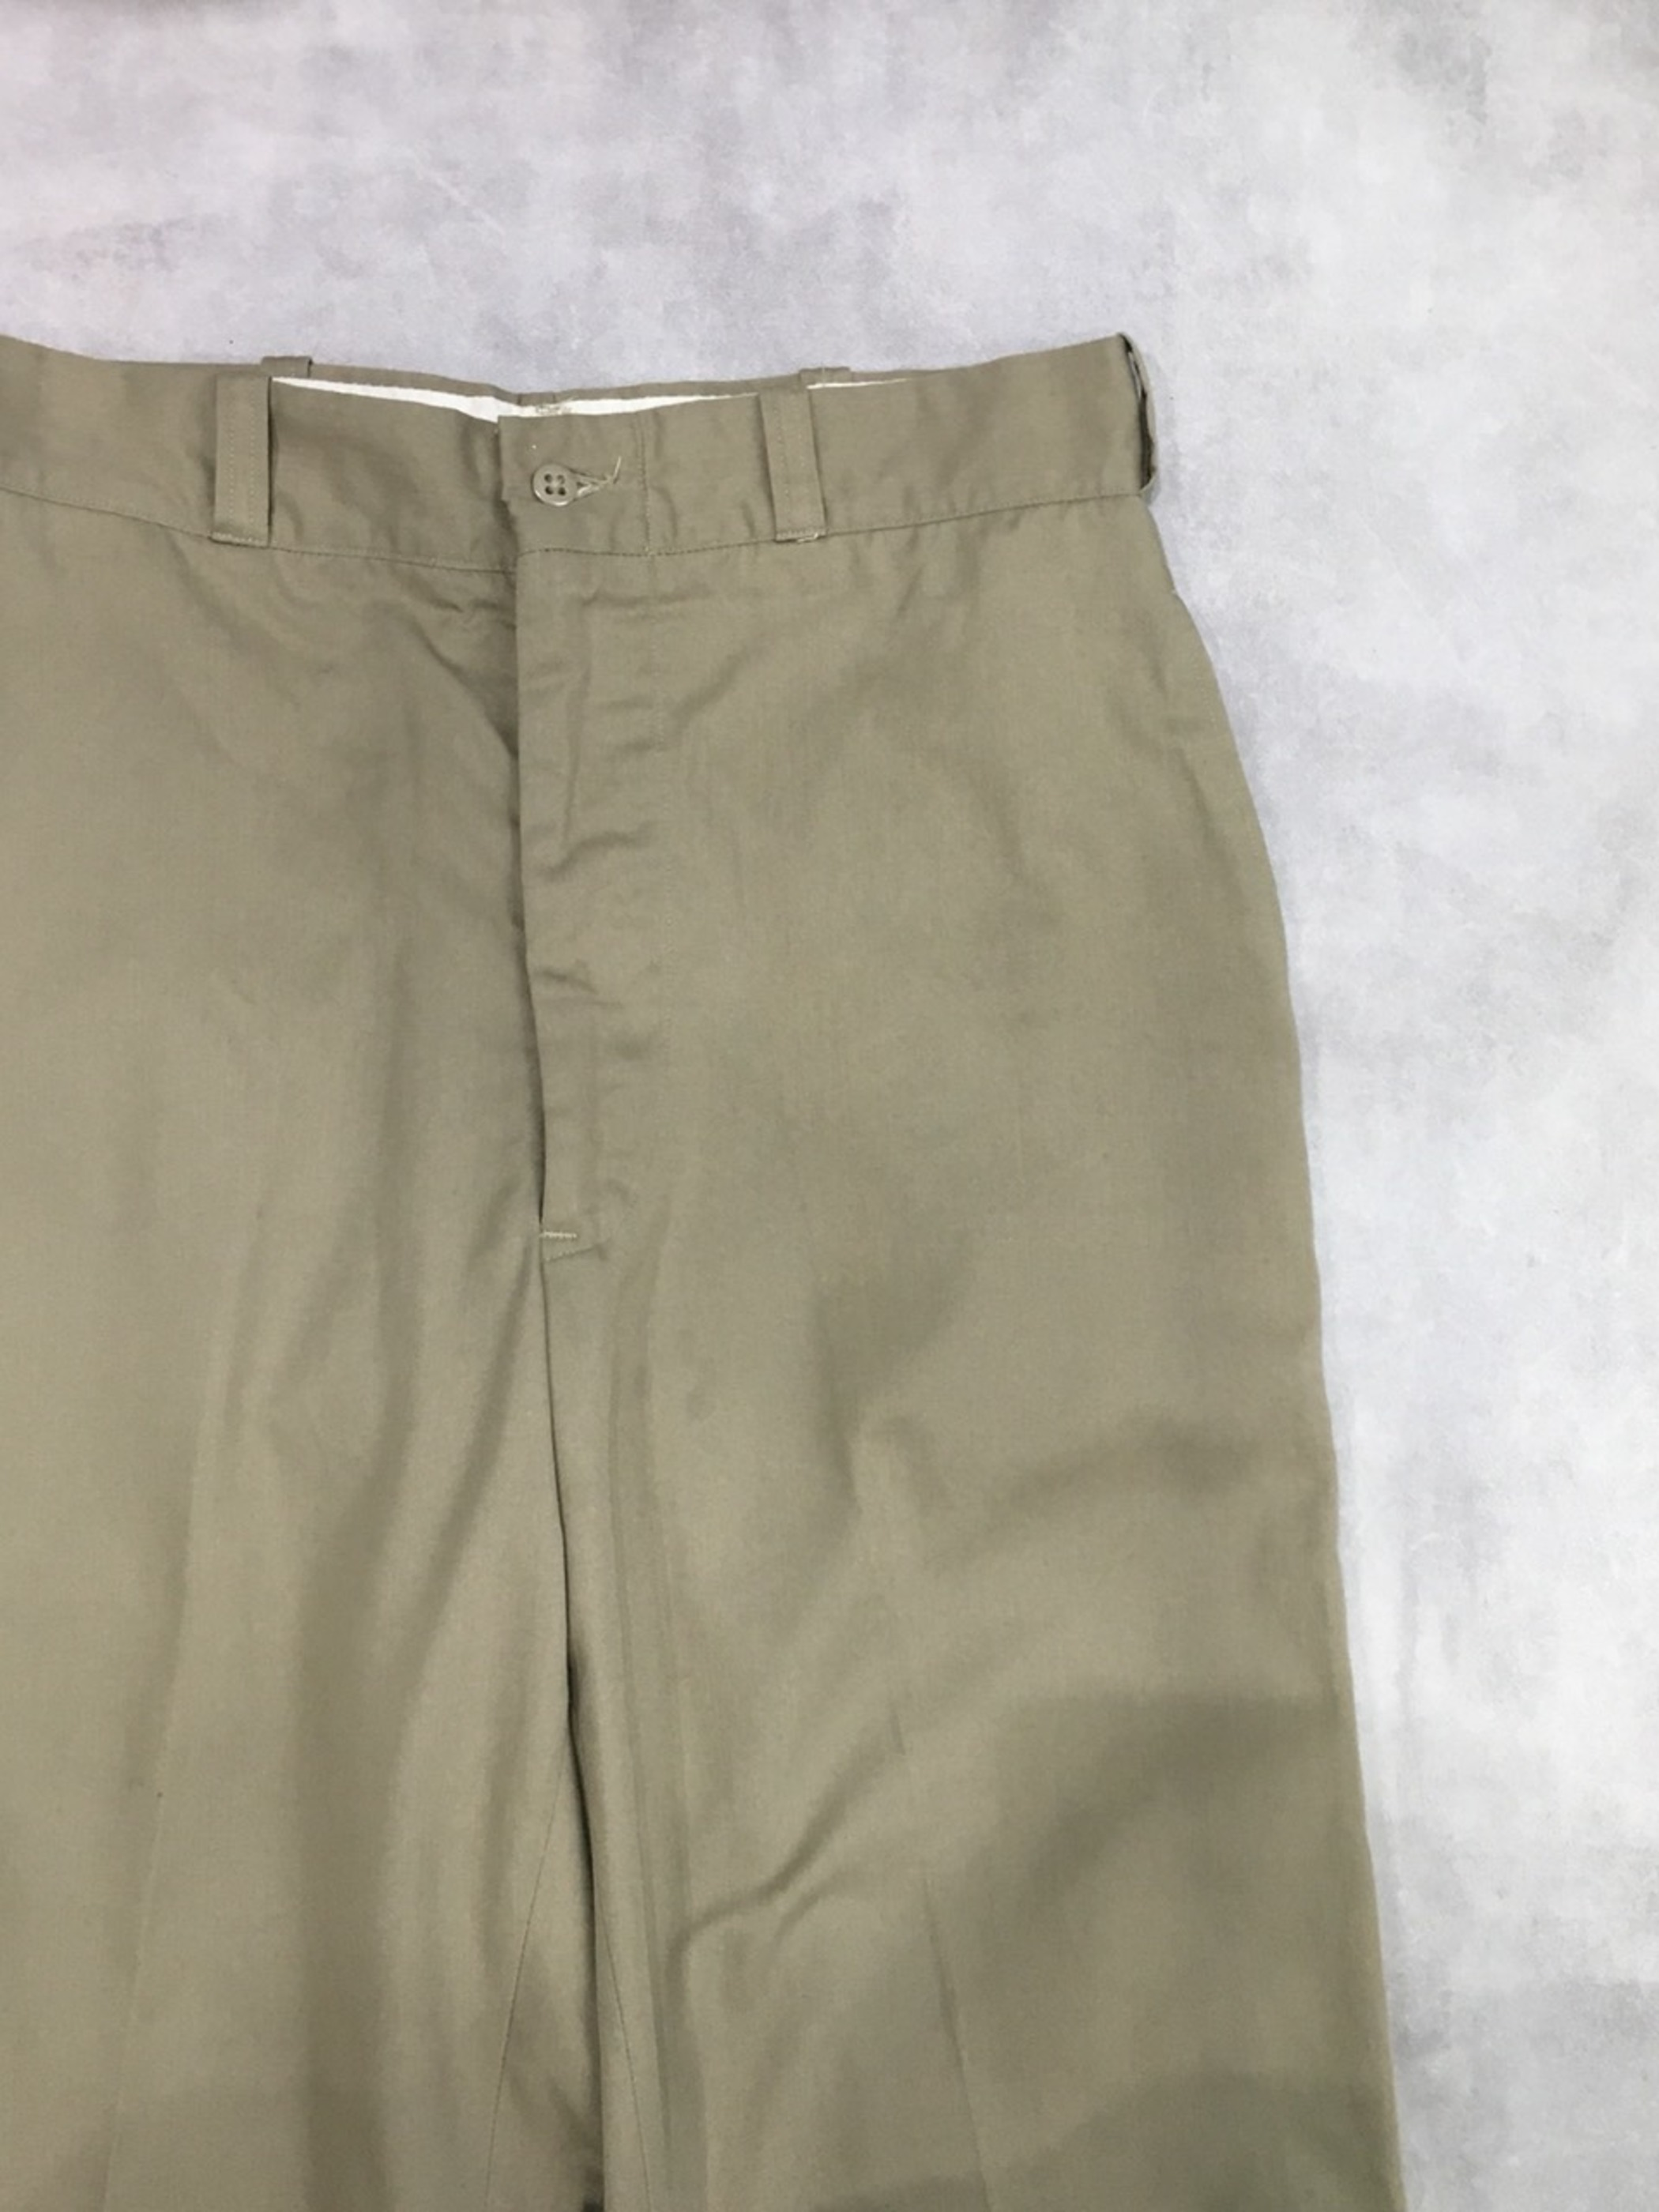 US ARMY cotton&polyester twill trousers